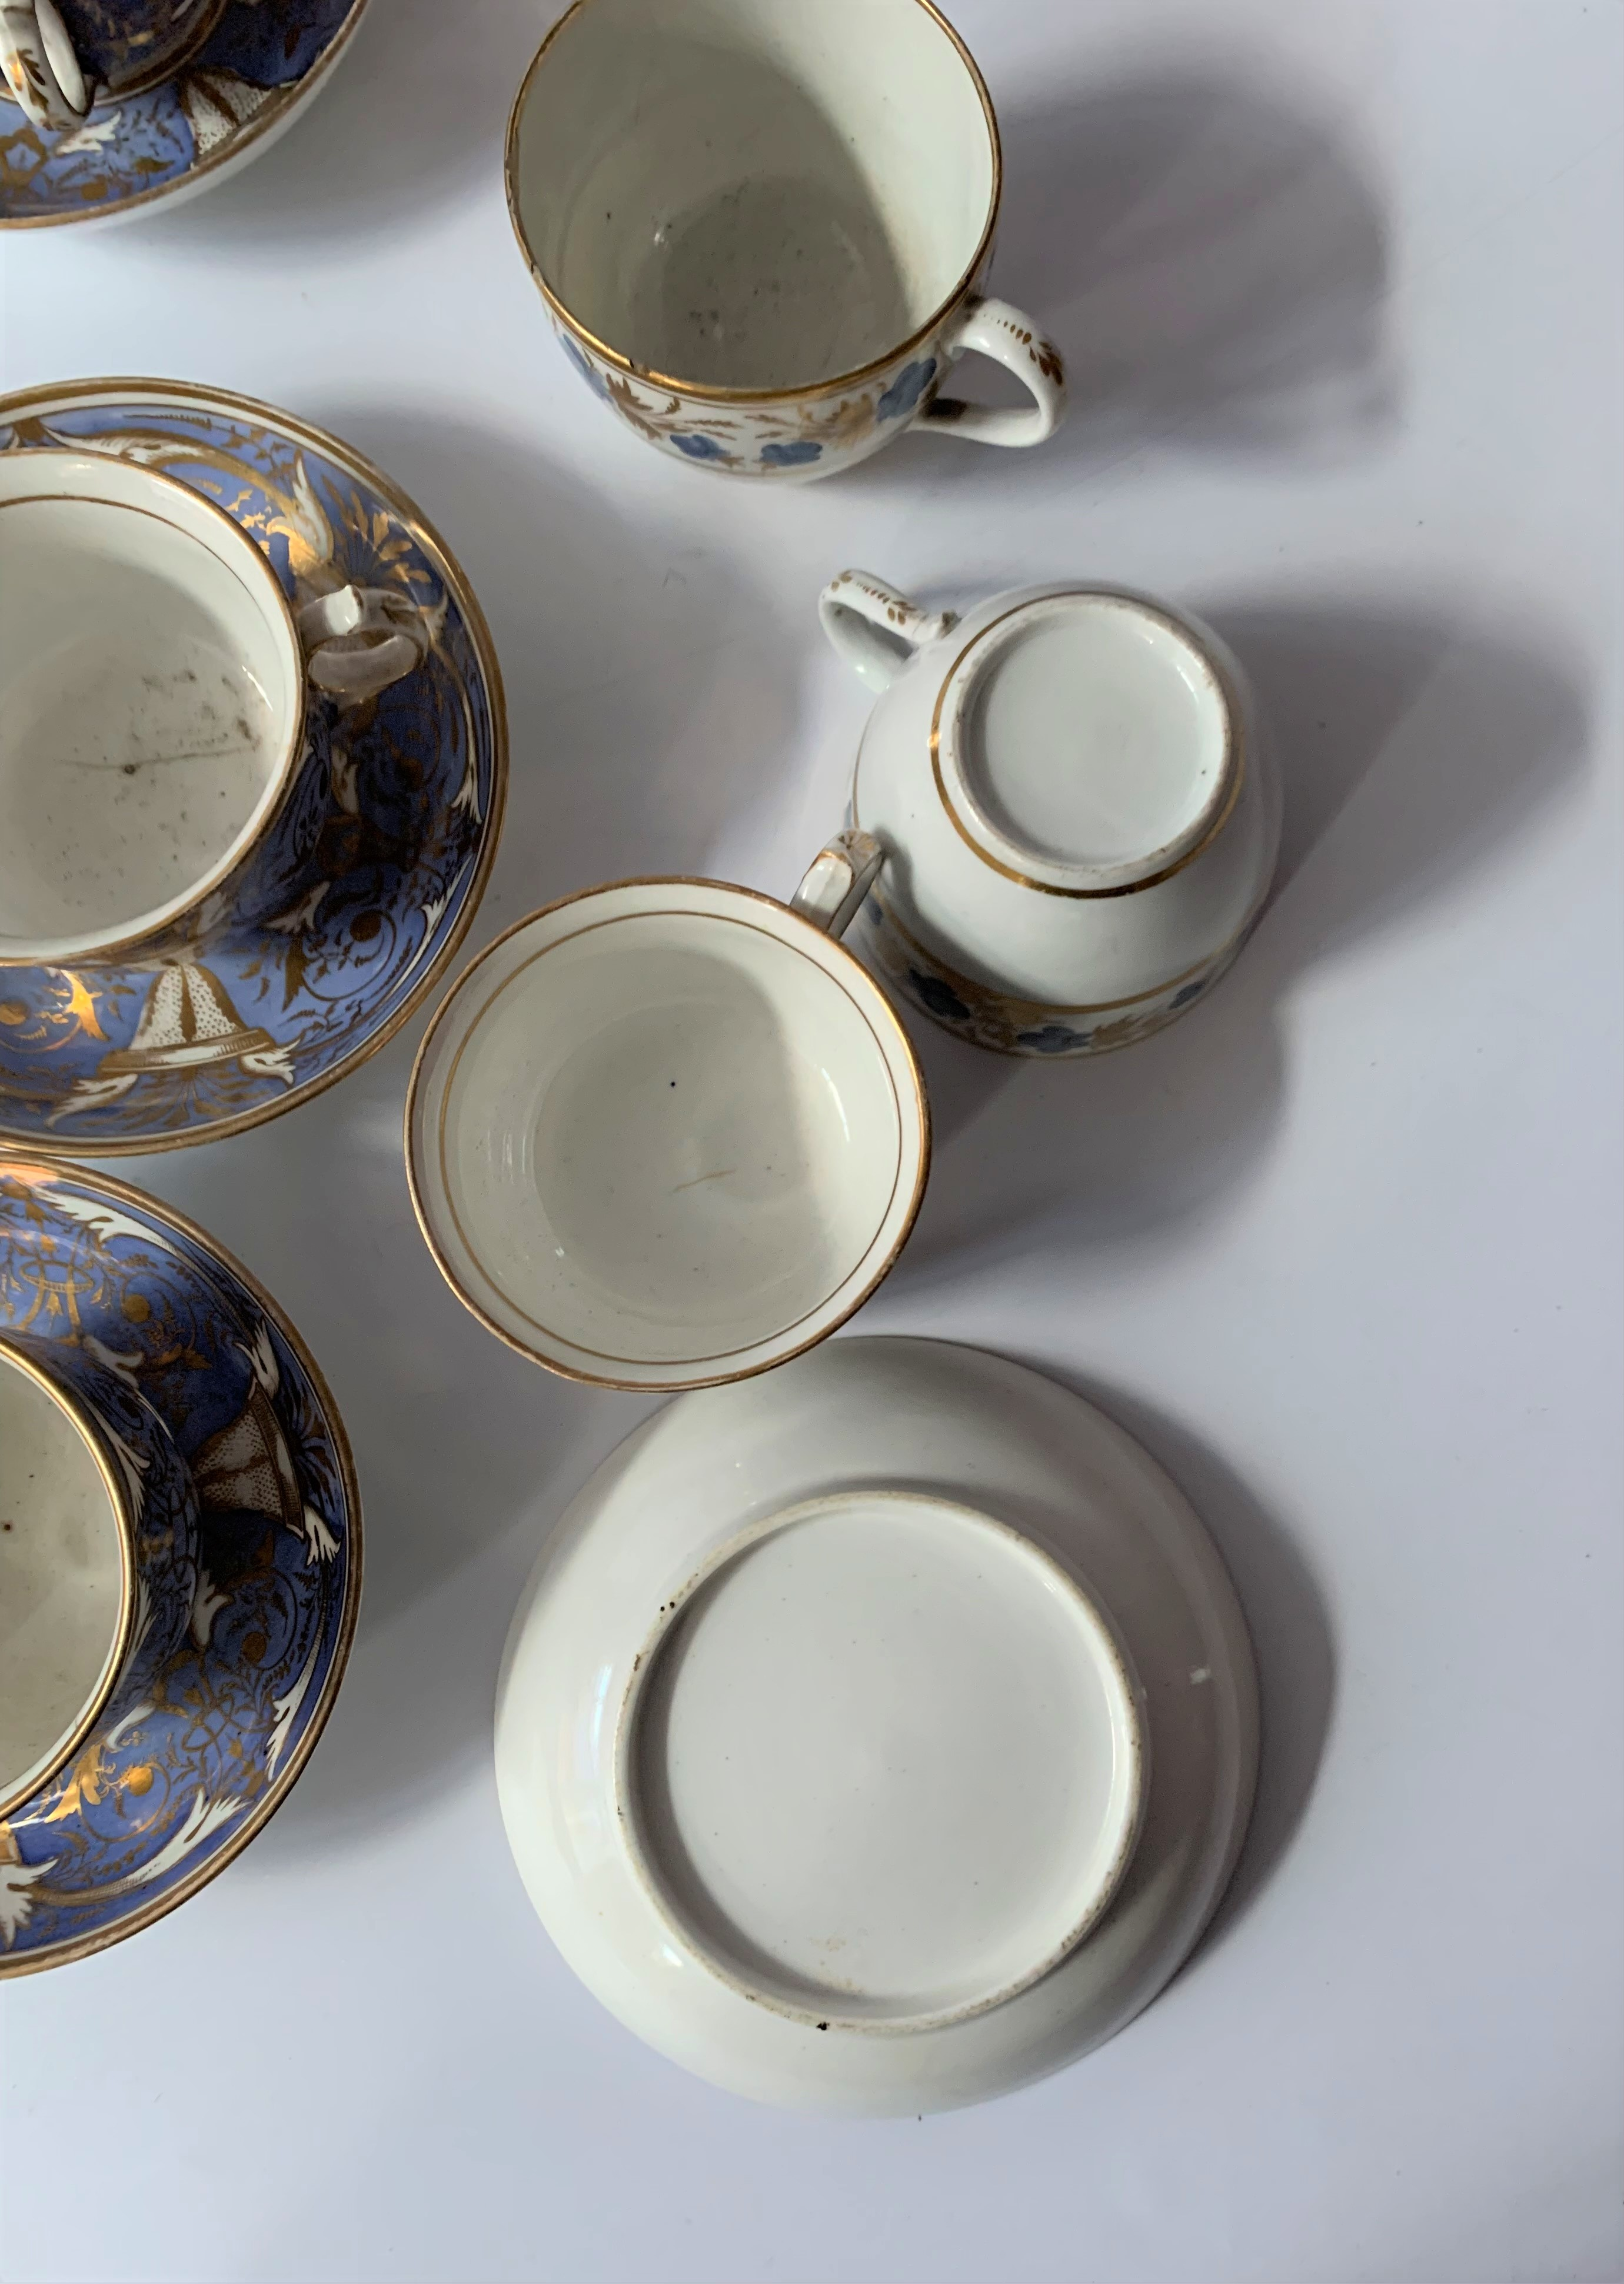 2 part blue/gilt tea and coffee sets - Image 6 of 6